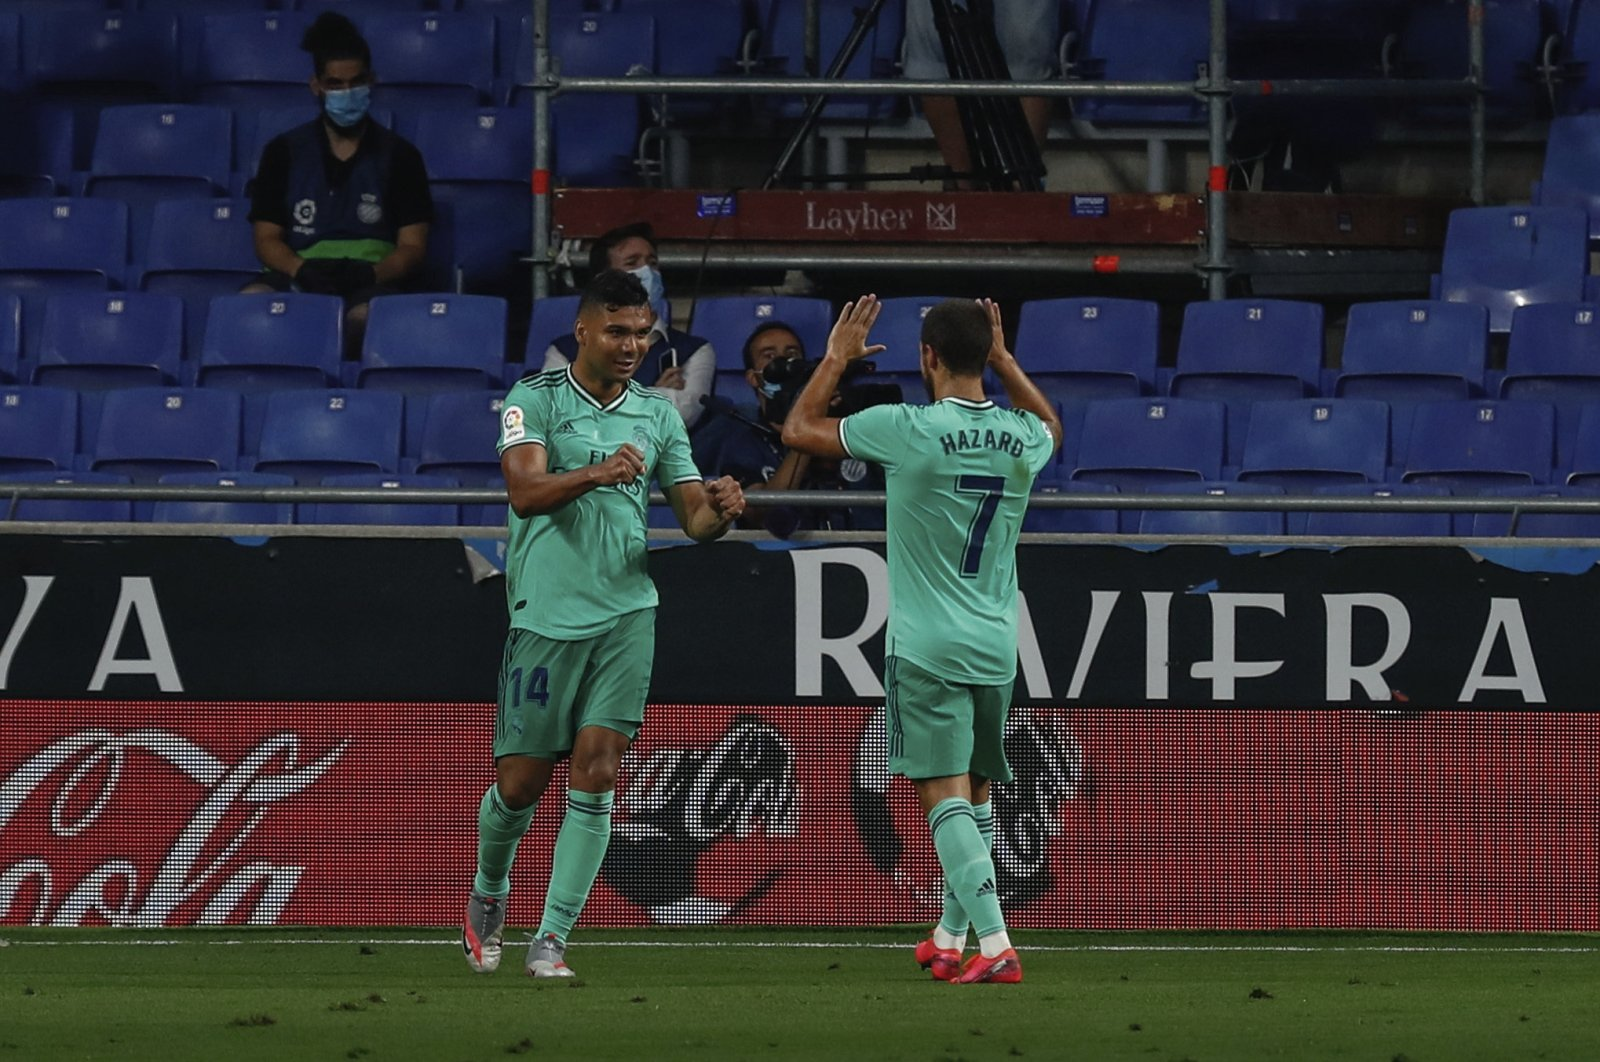 Real Madrid's Casemiro (L) is congratulated by teammate Eden Hazard after scoring the opening goal during the Spanish La Liga football match between RCD Espanyol and Real Madrid at the Cornella-El Prat stadium in Barcelona, Spain, June 28, 2020. (AP Photo)